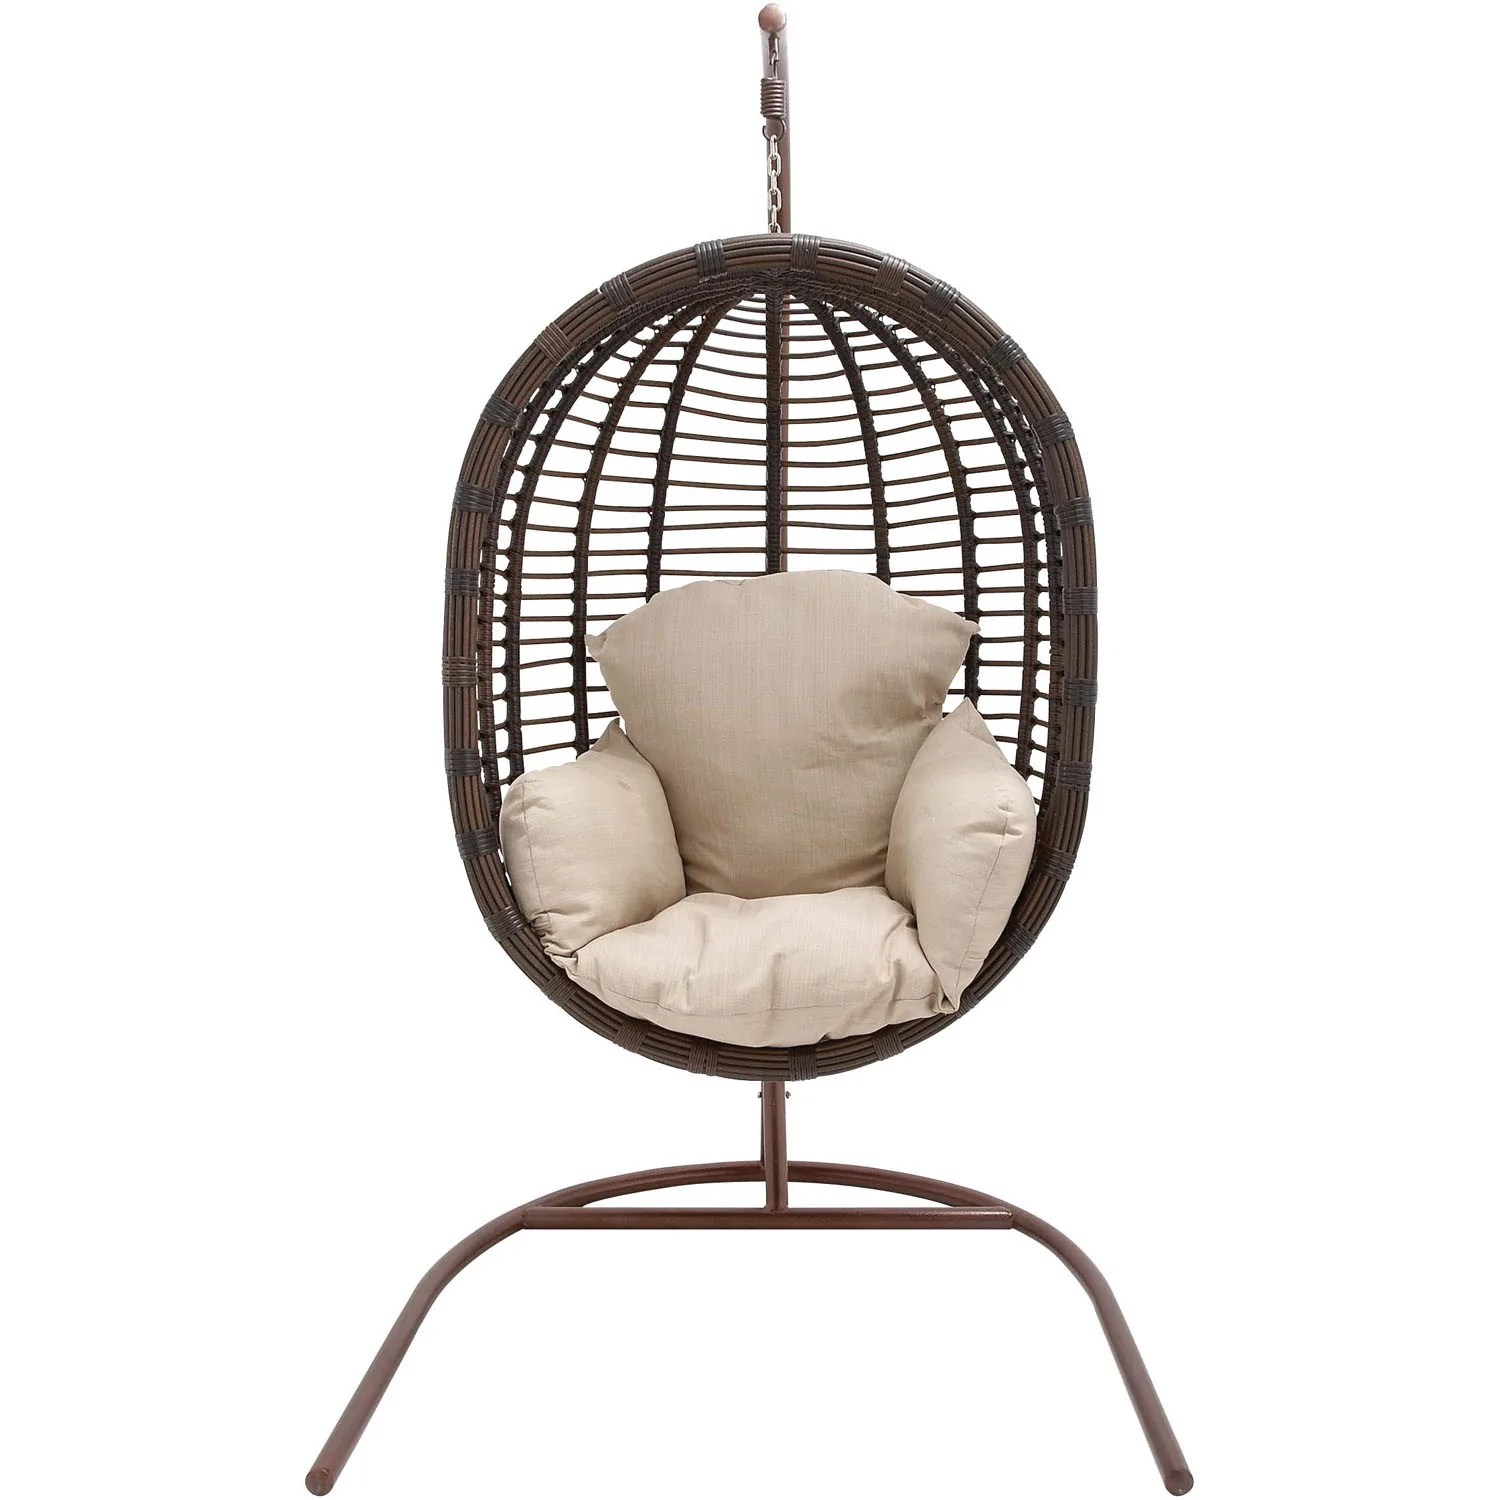 Cheap Hanging Egg Chair Hanover Outdoor Wicker Rattan Hanging Egg Chair Swing Egg Swing03